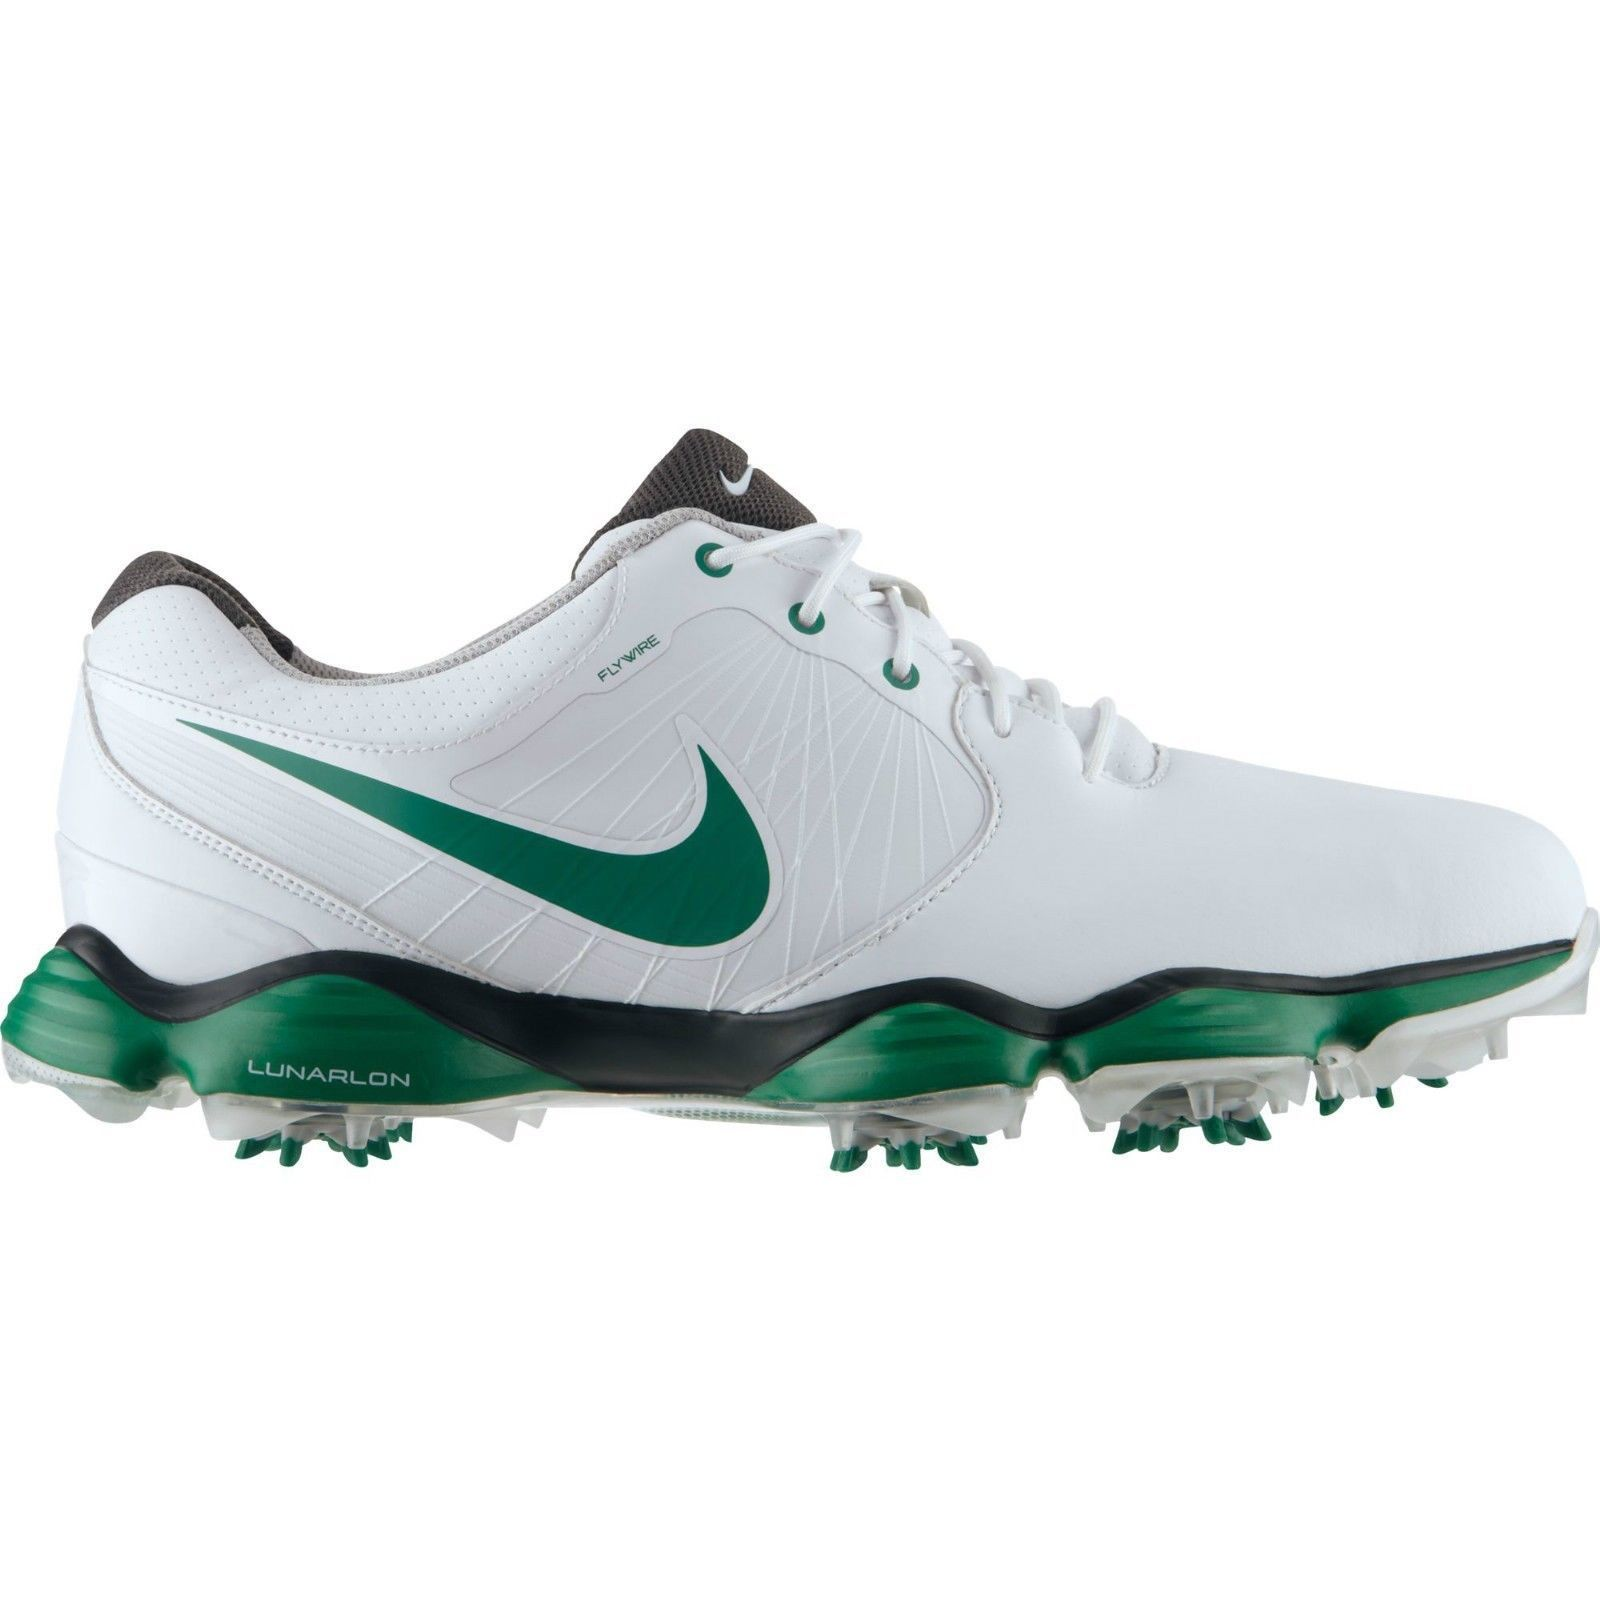 7753e318e95e Shop Nike Men s Lunar Control II SL Limited Edition Masters White  Green Golf  Shoes - Free Shipping Today - Overstock - 9773019